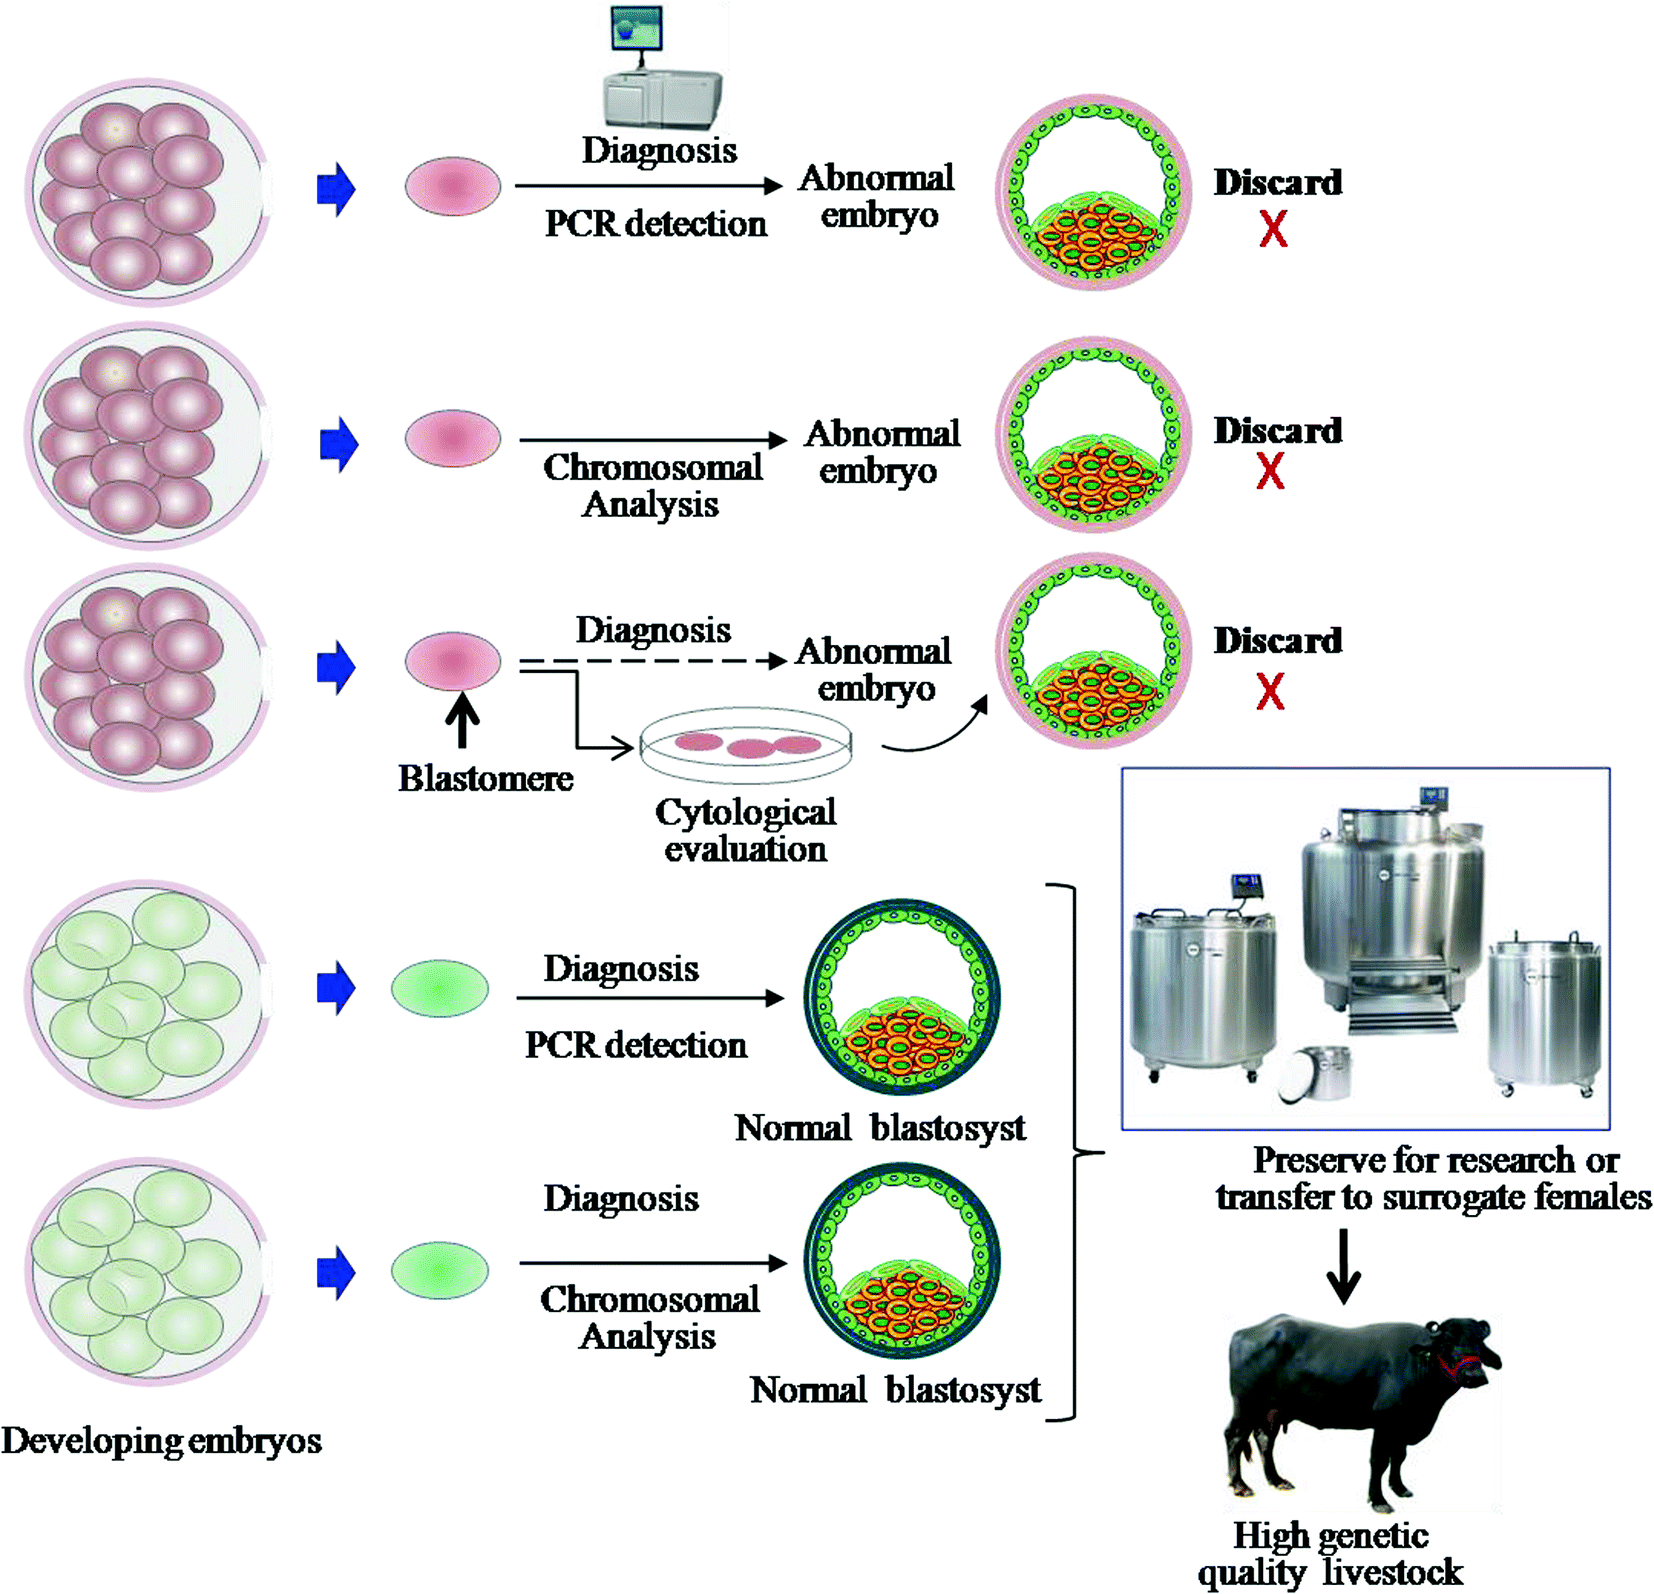 Revolutionary Reproduction Biotechnologies in Livestock: An